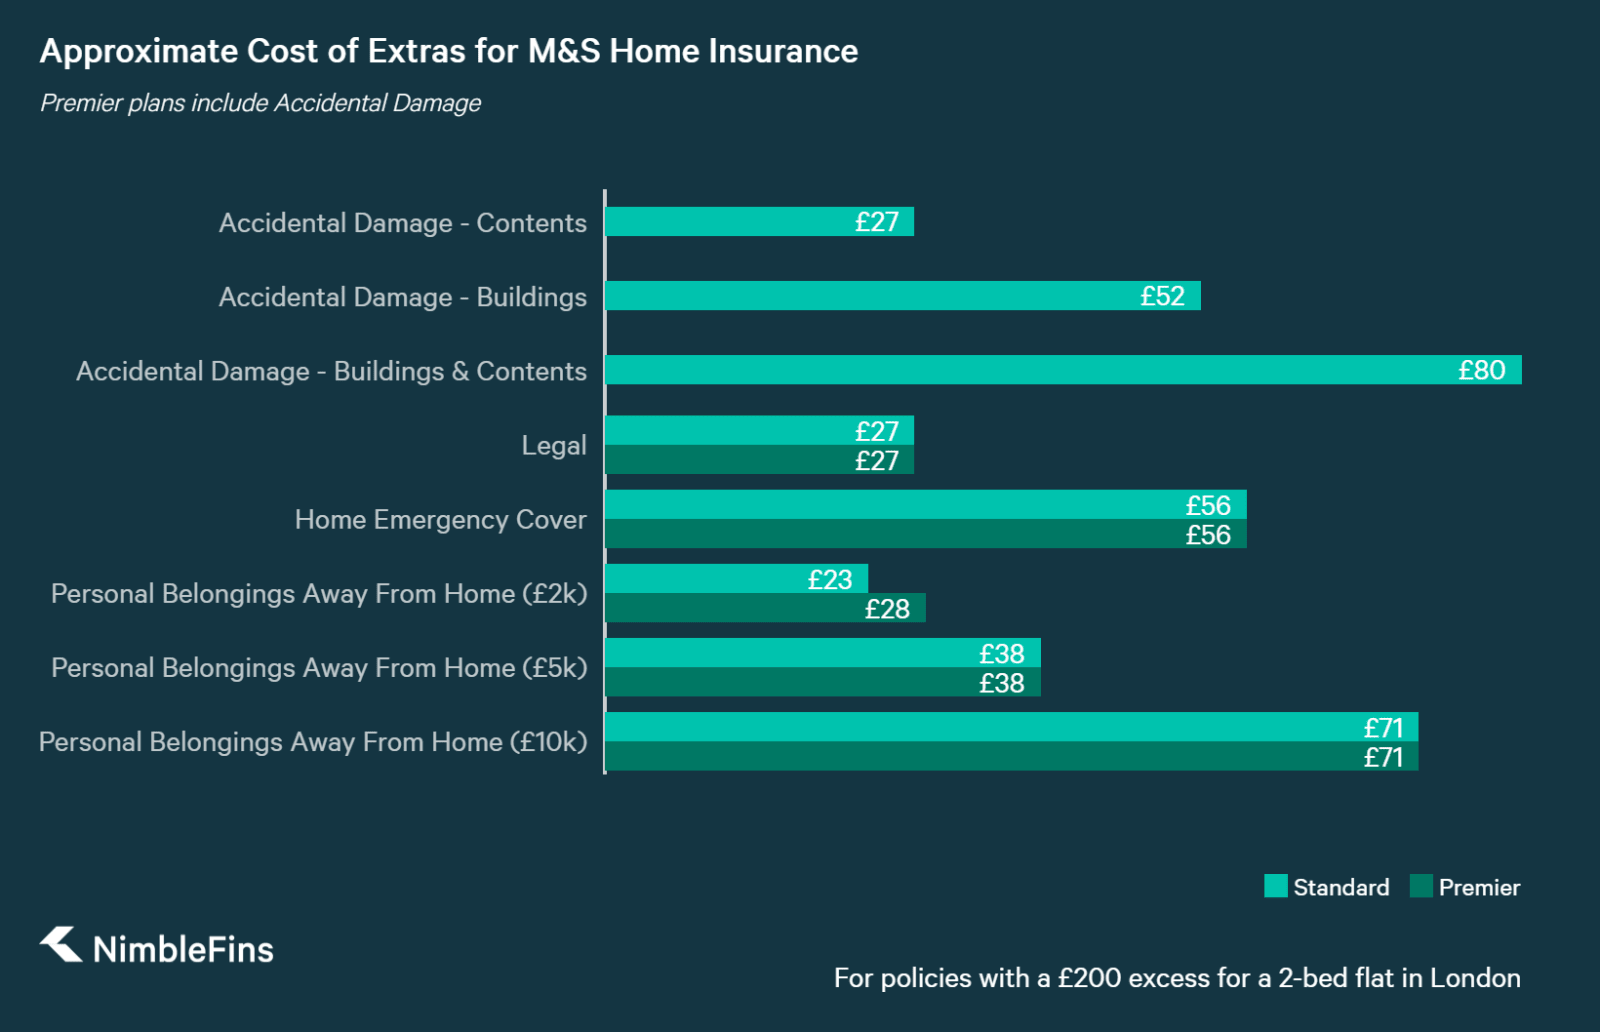 chart showing approximate cost of home insurance add ons for Marks and spencer home insurance